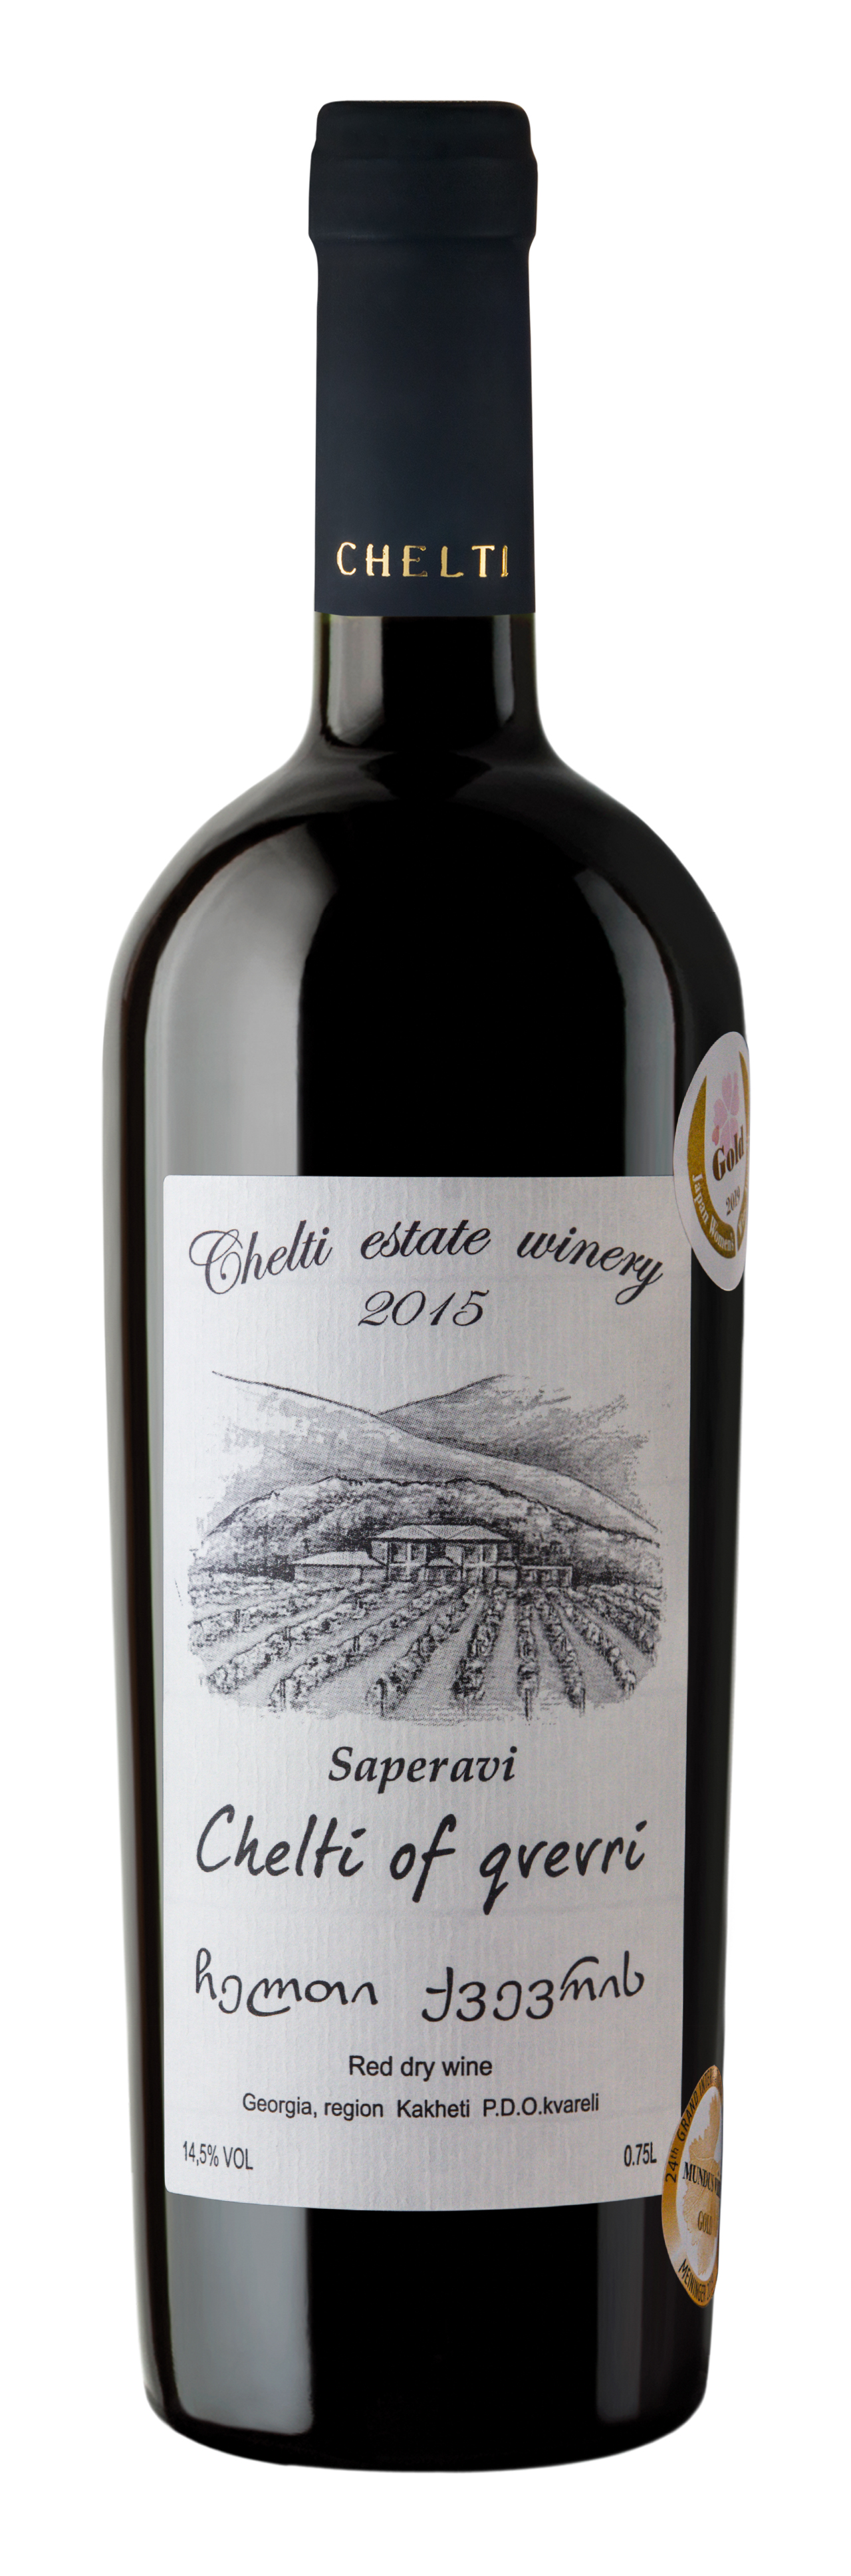 Chelti of Qvevri 2015 Red Dry - Alcohol: 14.5 % Volume 0.75 literA premium quality dry red wine is made from selected Saperavi grape variety grown at Chelti Vineyards. The vineyard is cultivated at the bottom of Caucasus range – on the rocks deposited by river Chelti. In August, Green harvest is held at Chelti Vineyards and unripe grapes are picked from vine, as a result of it only 5-6 tons of grapes are received per one hectare of vineyard. Received grapes are distinguished by sharp taste and varietal aromas.